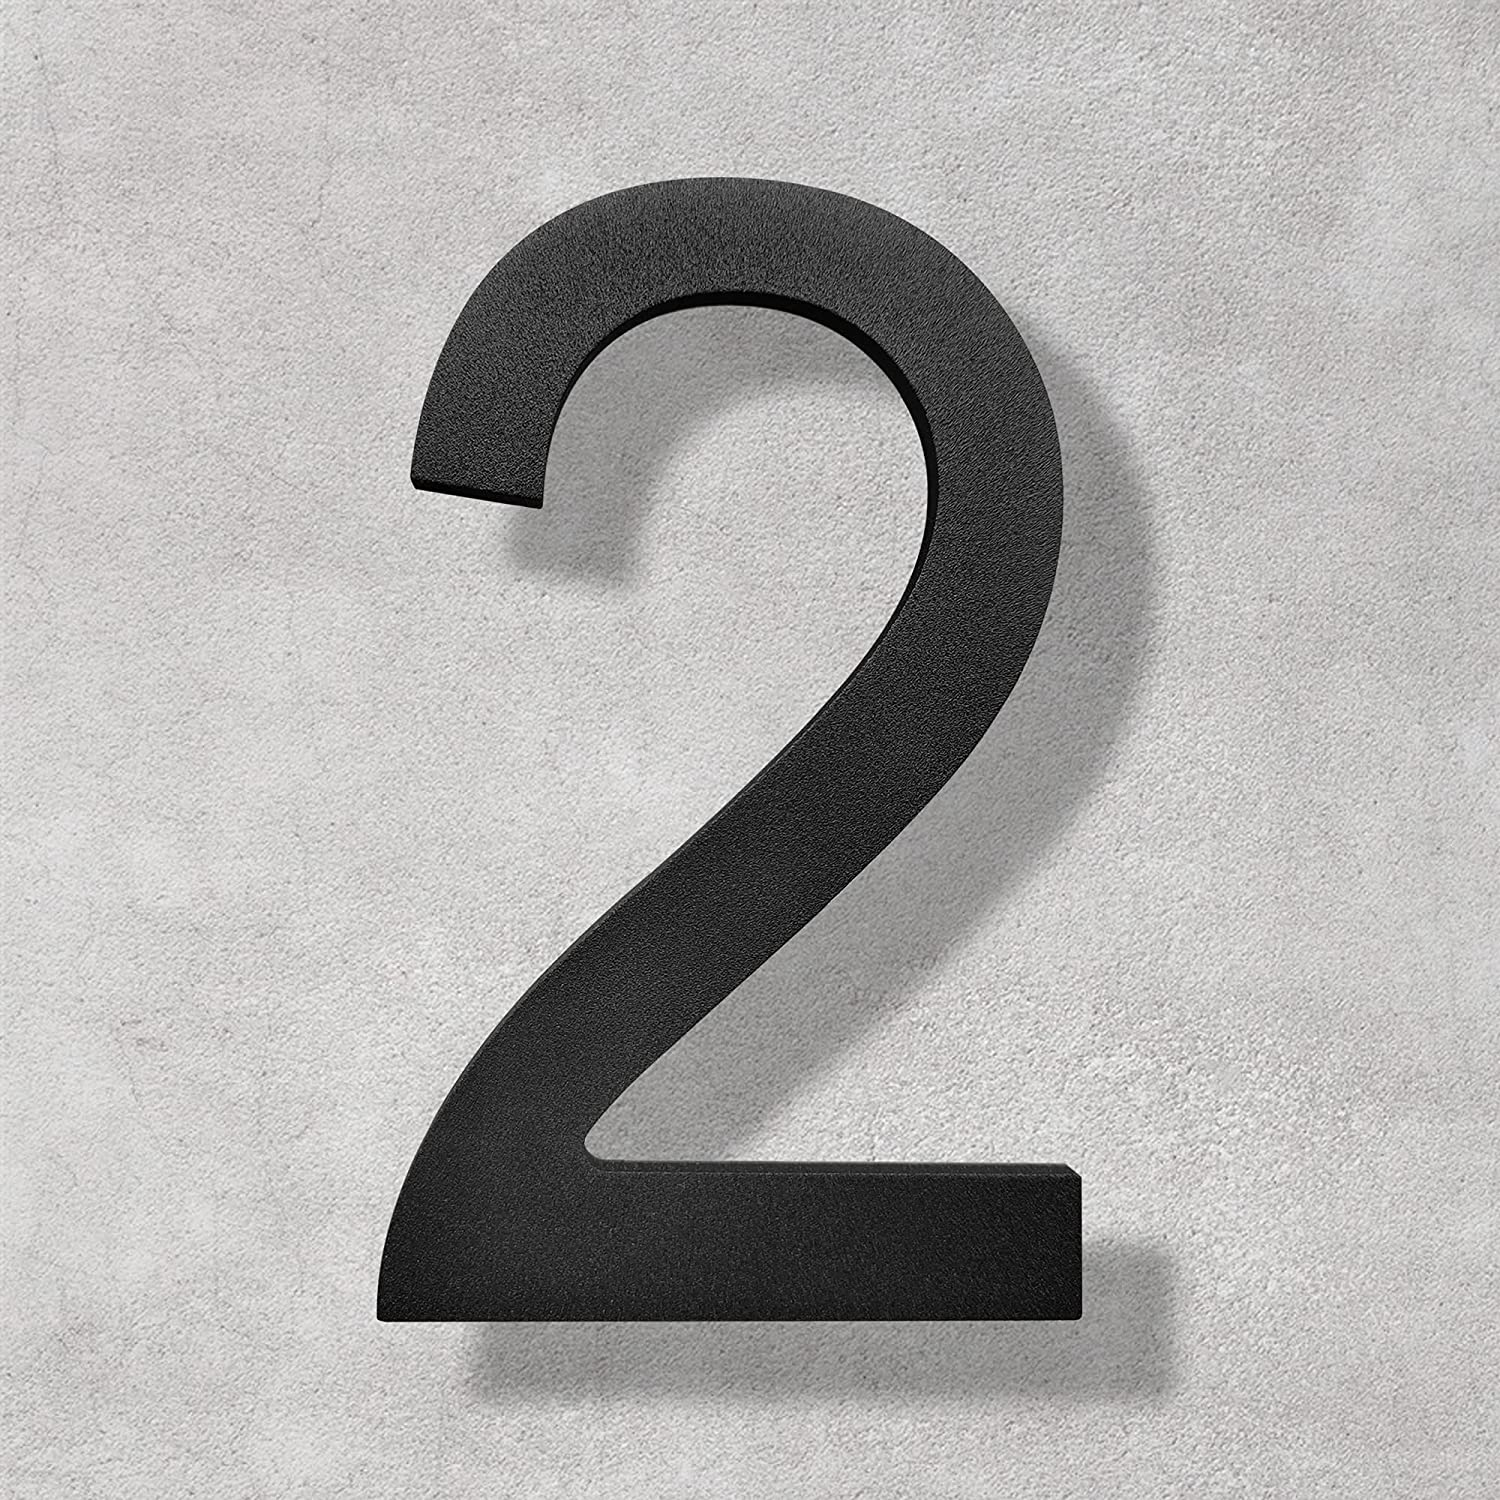 5 Inch High House Numbers- Rustproof Stainless Steel Floating Home Address Number, Elegant Matte Black Finished (Number 2)